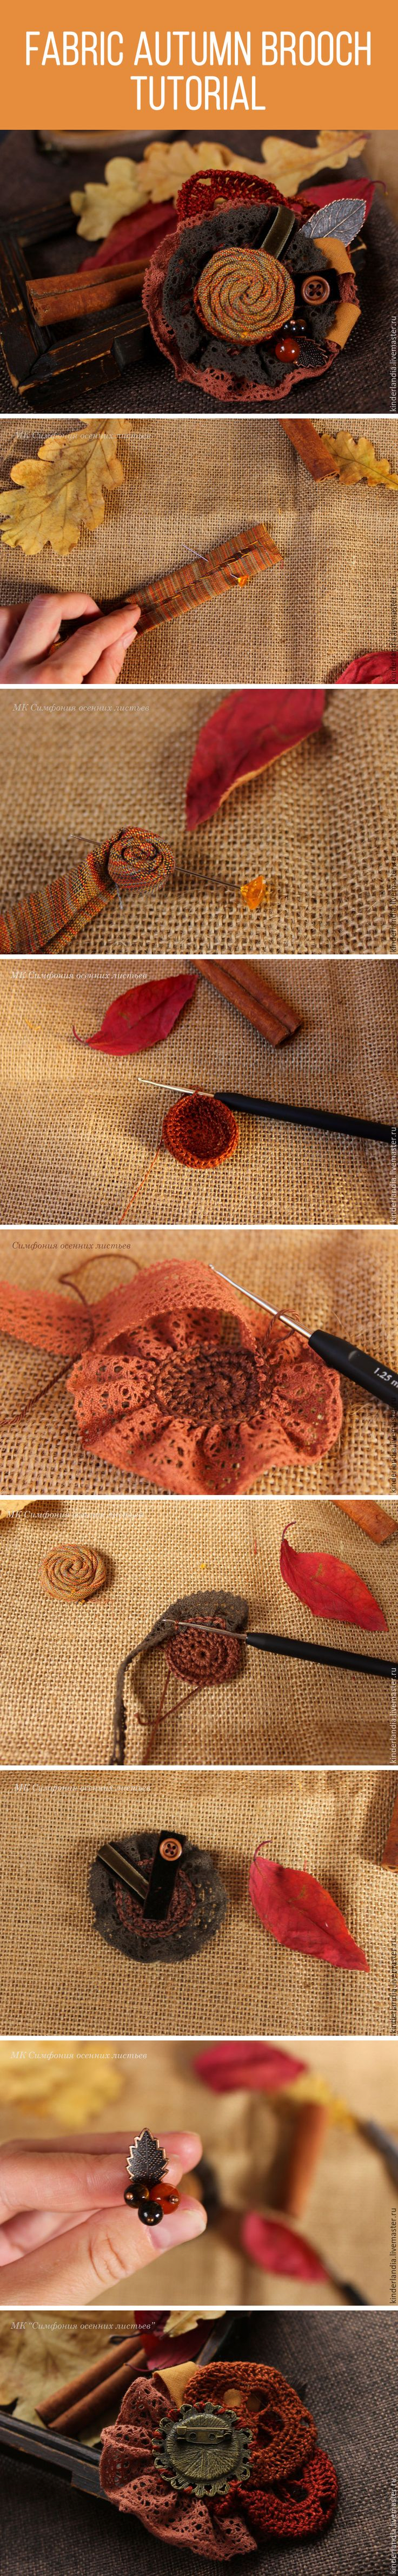 Fabric autumn brooch tutorial